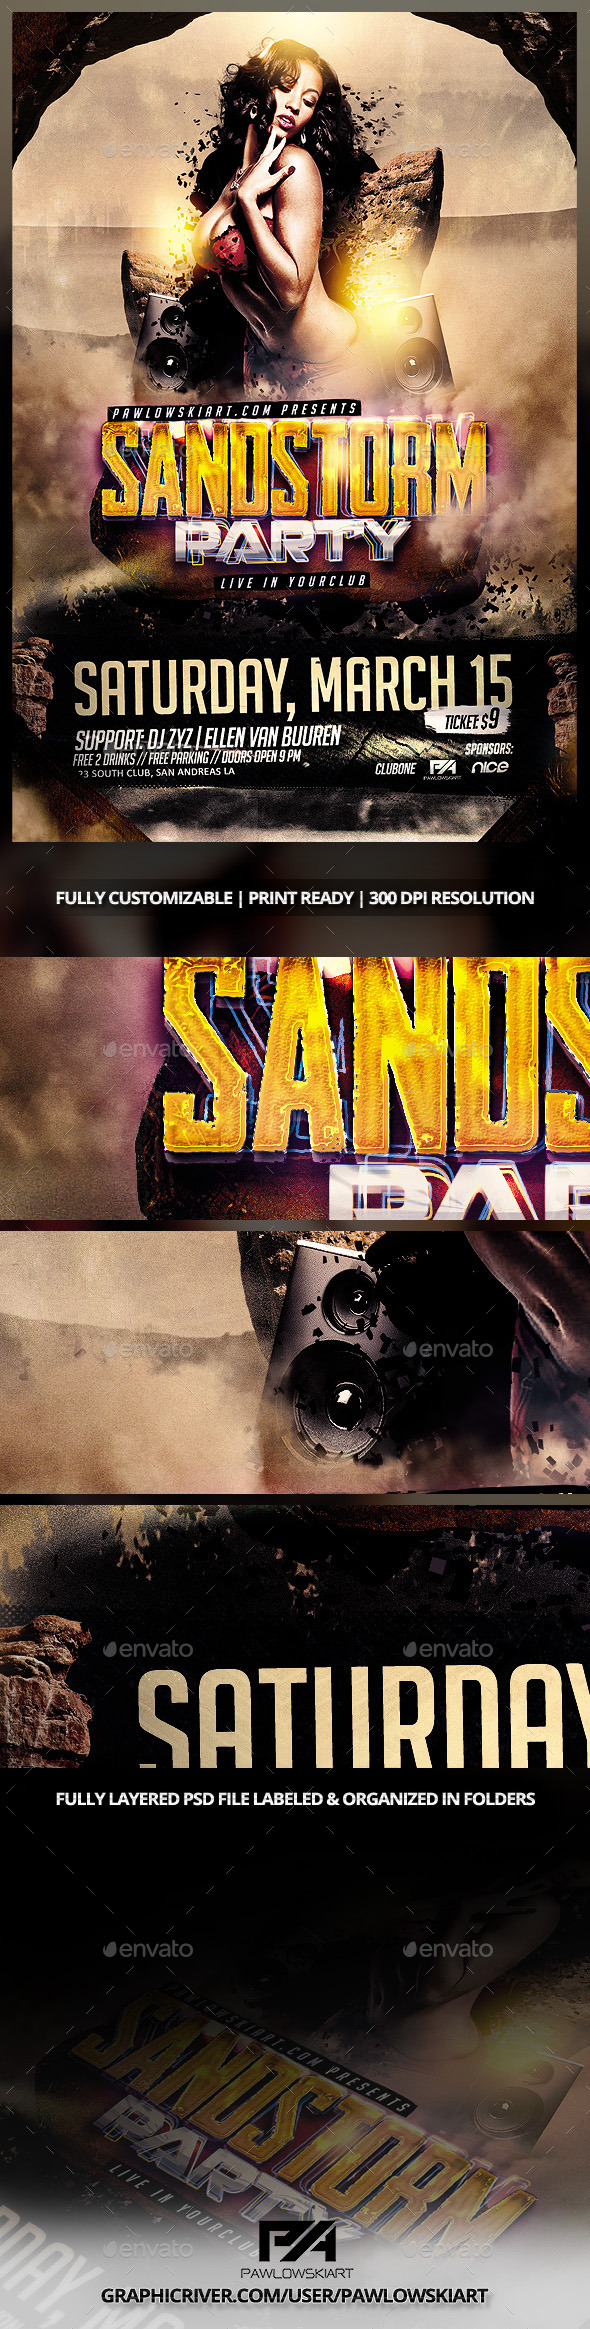 Sandstorm Party Flyer Template PSD - Clubs & Parties Events